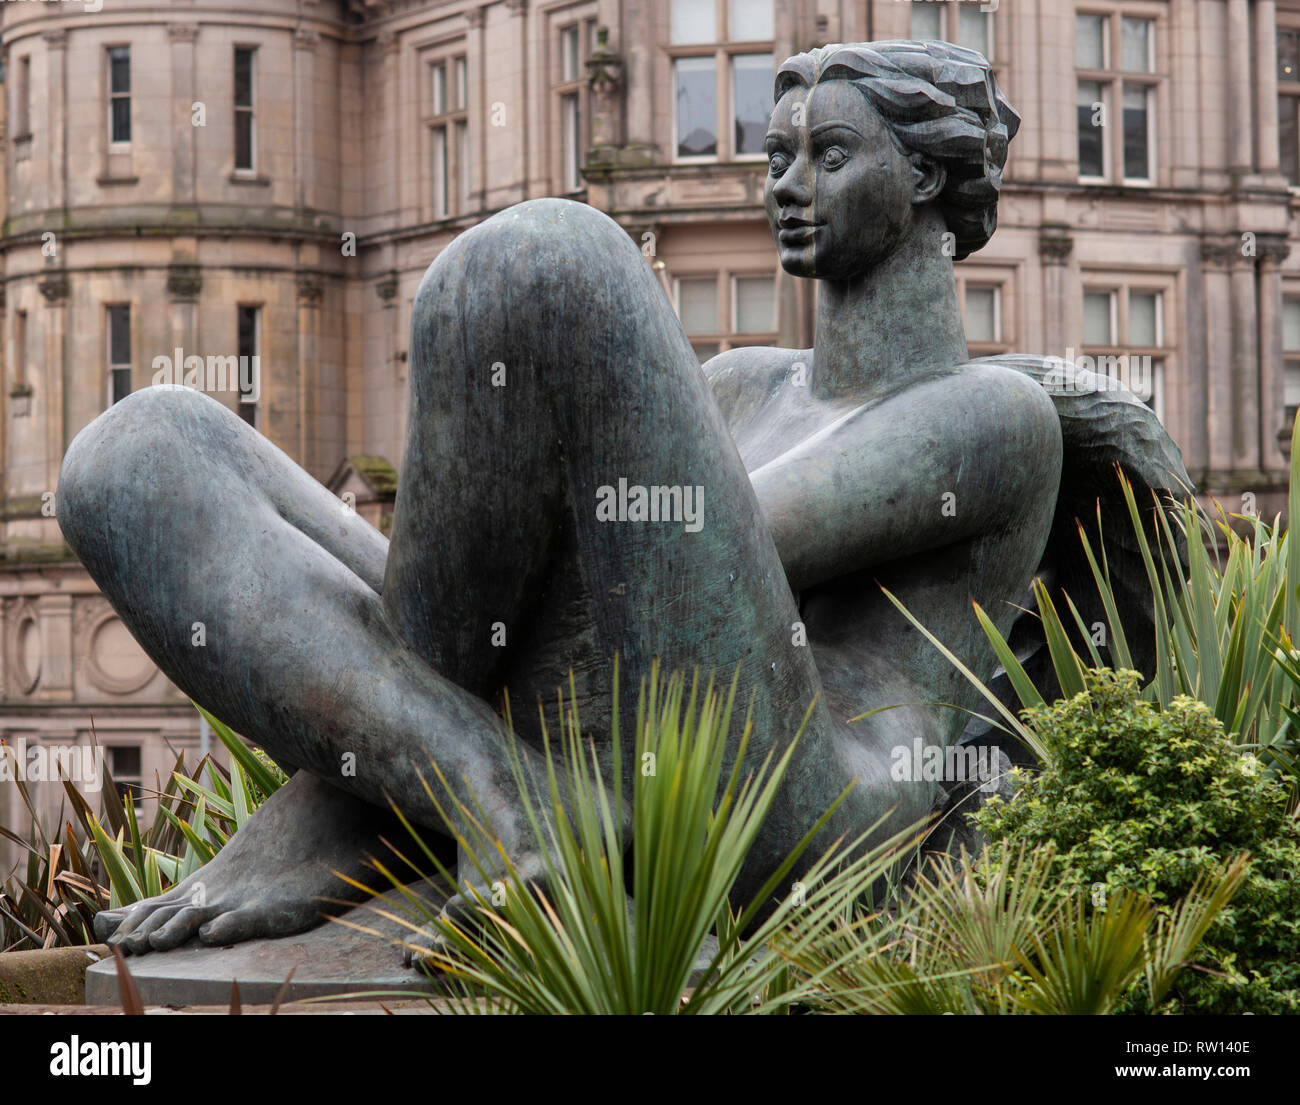 View of Victoria Square, Birmingham. Elements of public art called The River designed by Dhruva Mistry - Stock Image